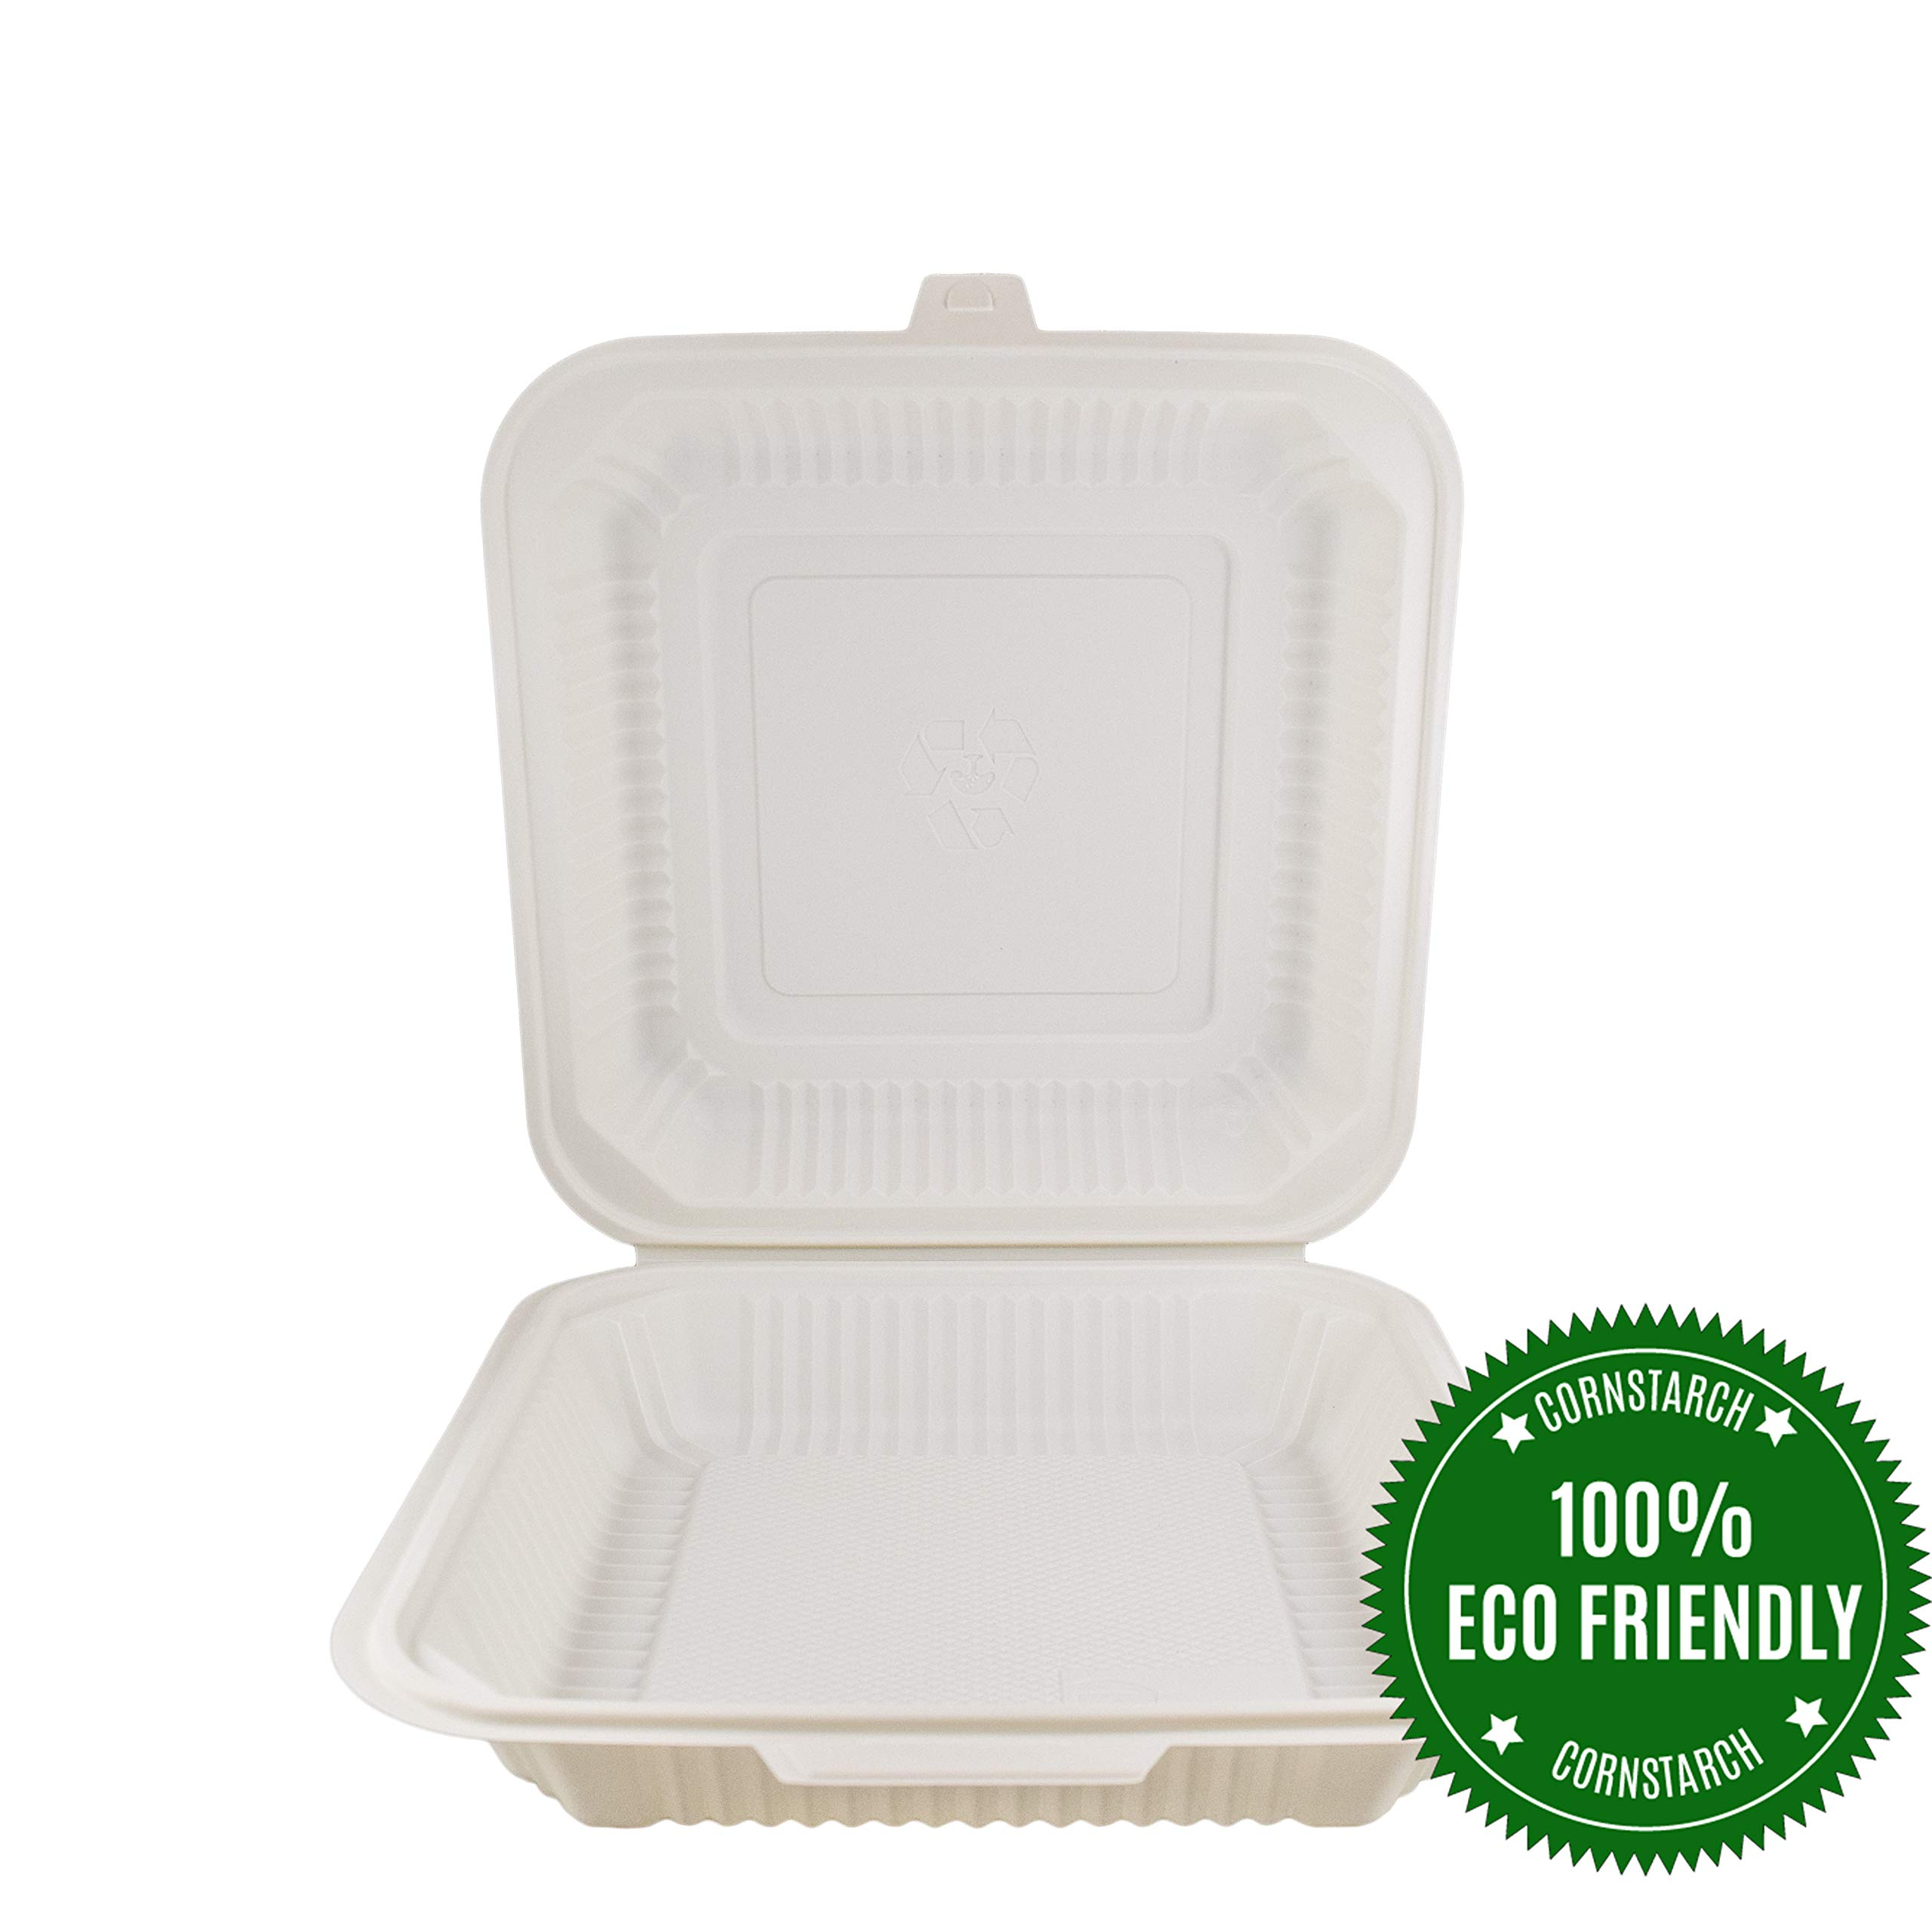 HeloGreen Eco-Friendly (9''x 9'', 1-Compartment) Cornstarch Disposable Food Containers With Lids For: Lunch Salad Meal Prep Storage Box To Go Leftover, BPA-Free, Microwave and Freezer Safe - (100 Set)